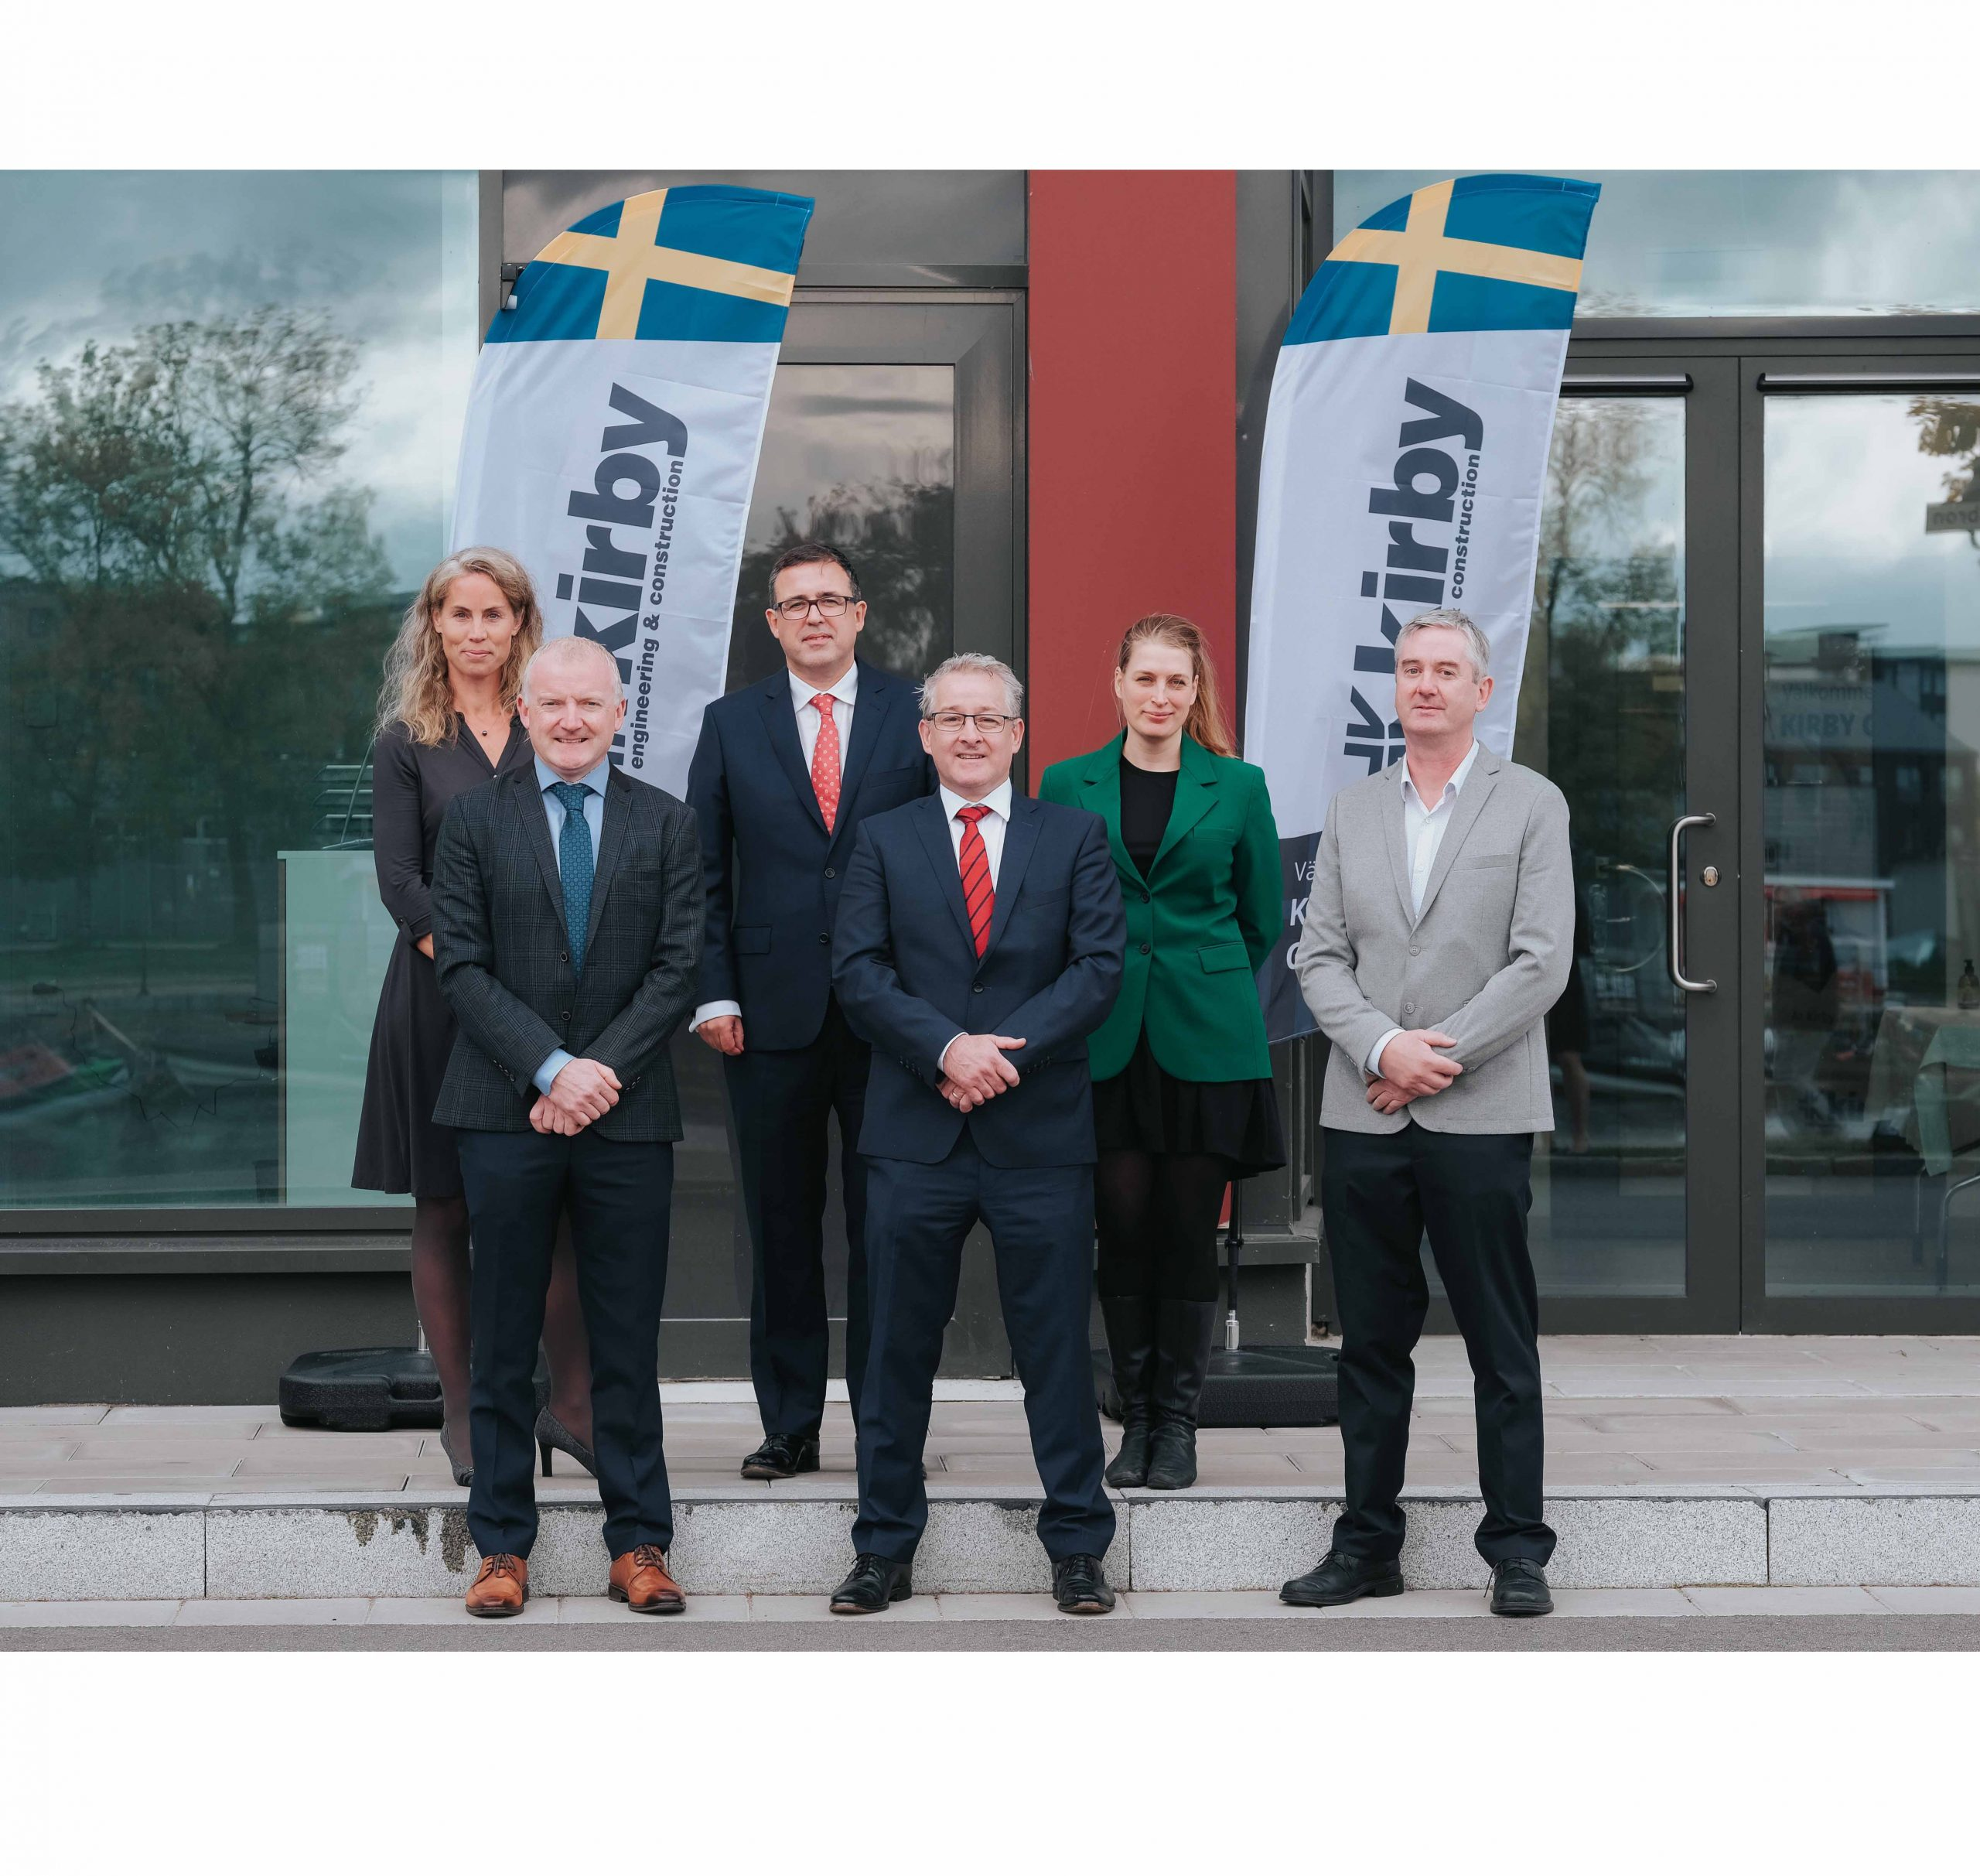 Kirby Group Engineering has announced it is establishing a new office presence in Gävle, Sweden. Pictured at today's announcement are: L-R - Back Row – Karin Angus, Enterprise Ireland's Global Lead Datacentres, Ambassador Austin Gormley, Eva Älander – Chairman of the Municipal Council Front Row - John Grogan – Kirby Group Engineering Director, Mark Flanagan – Kirby Group Managing Director, Pearse Dolan – Kirby Operations Manager